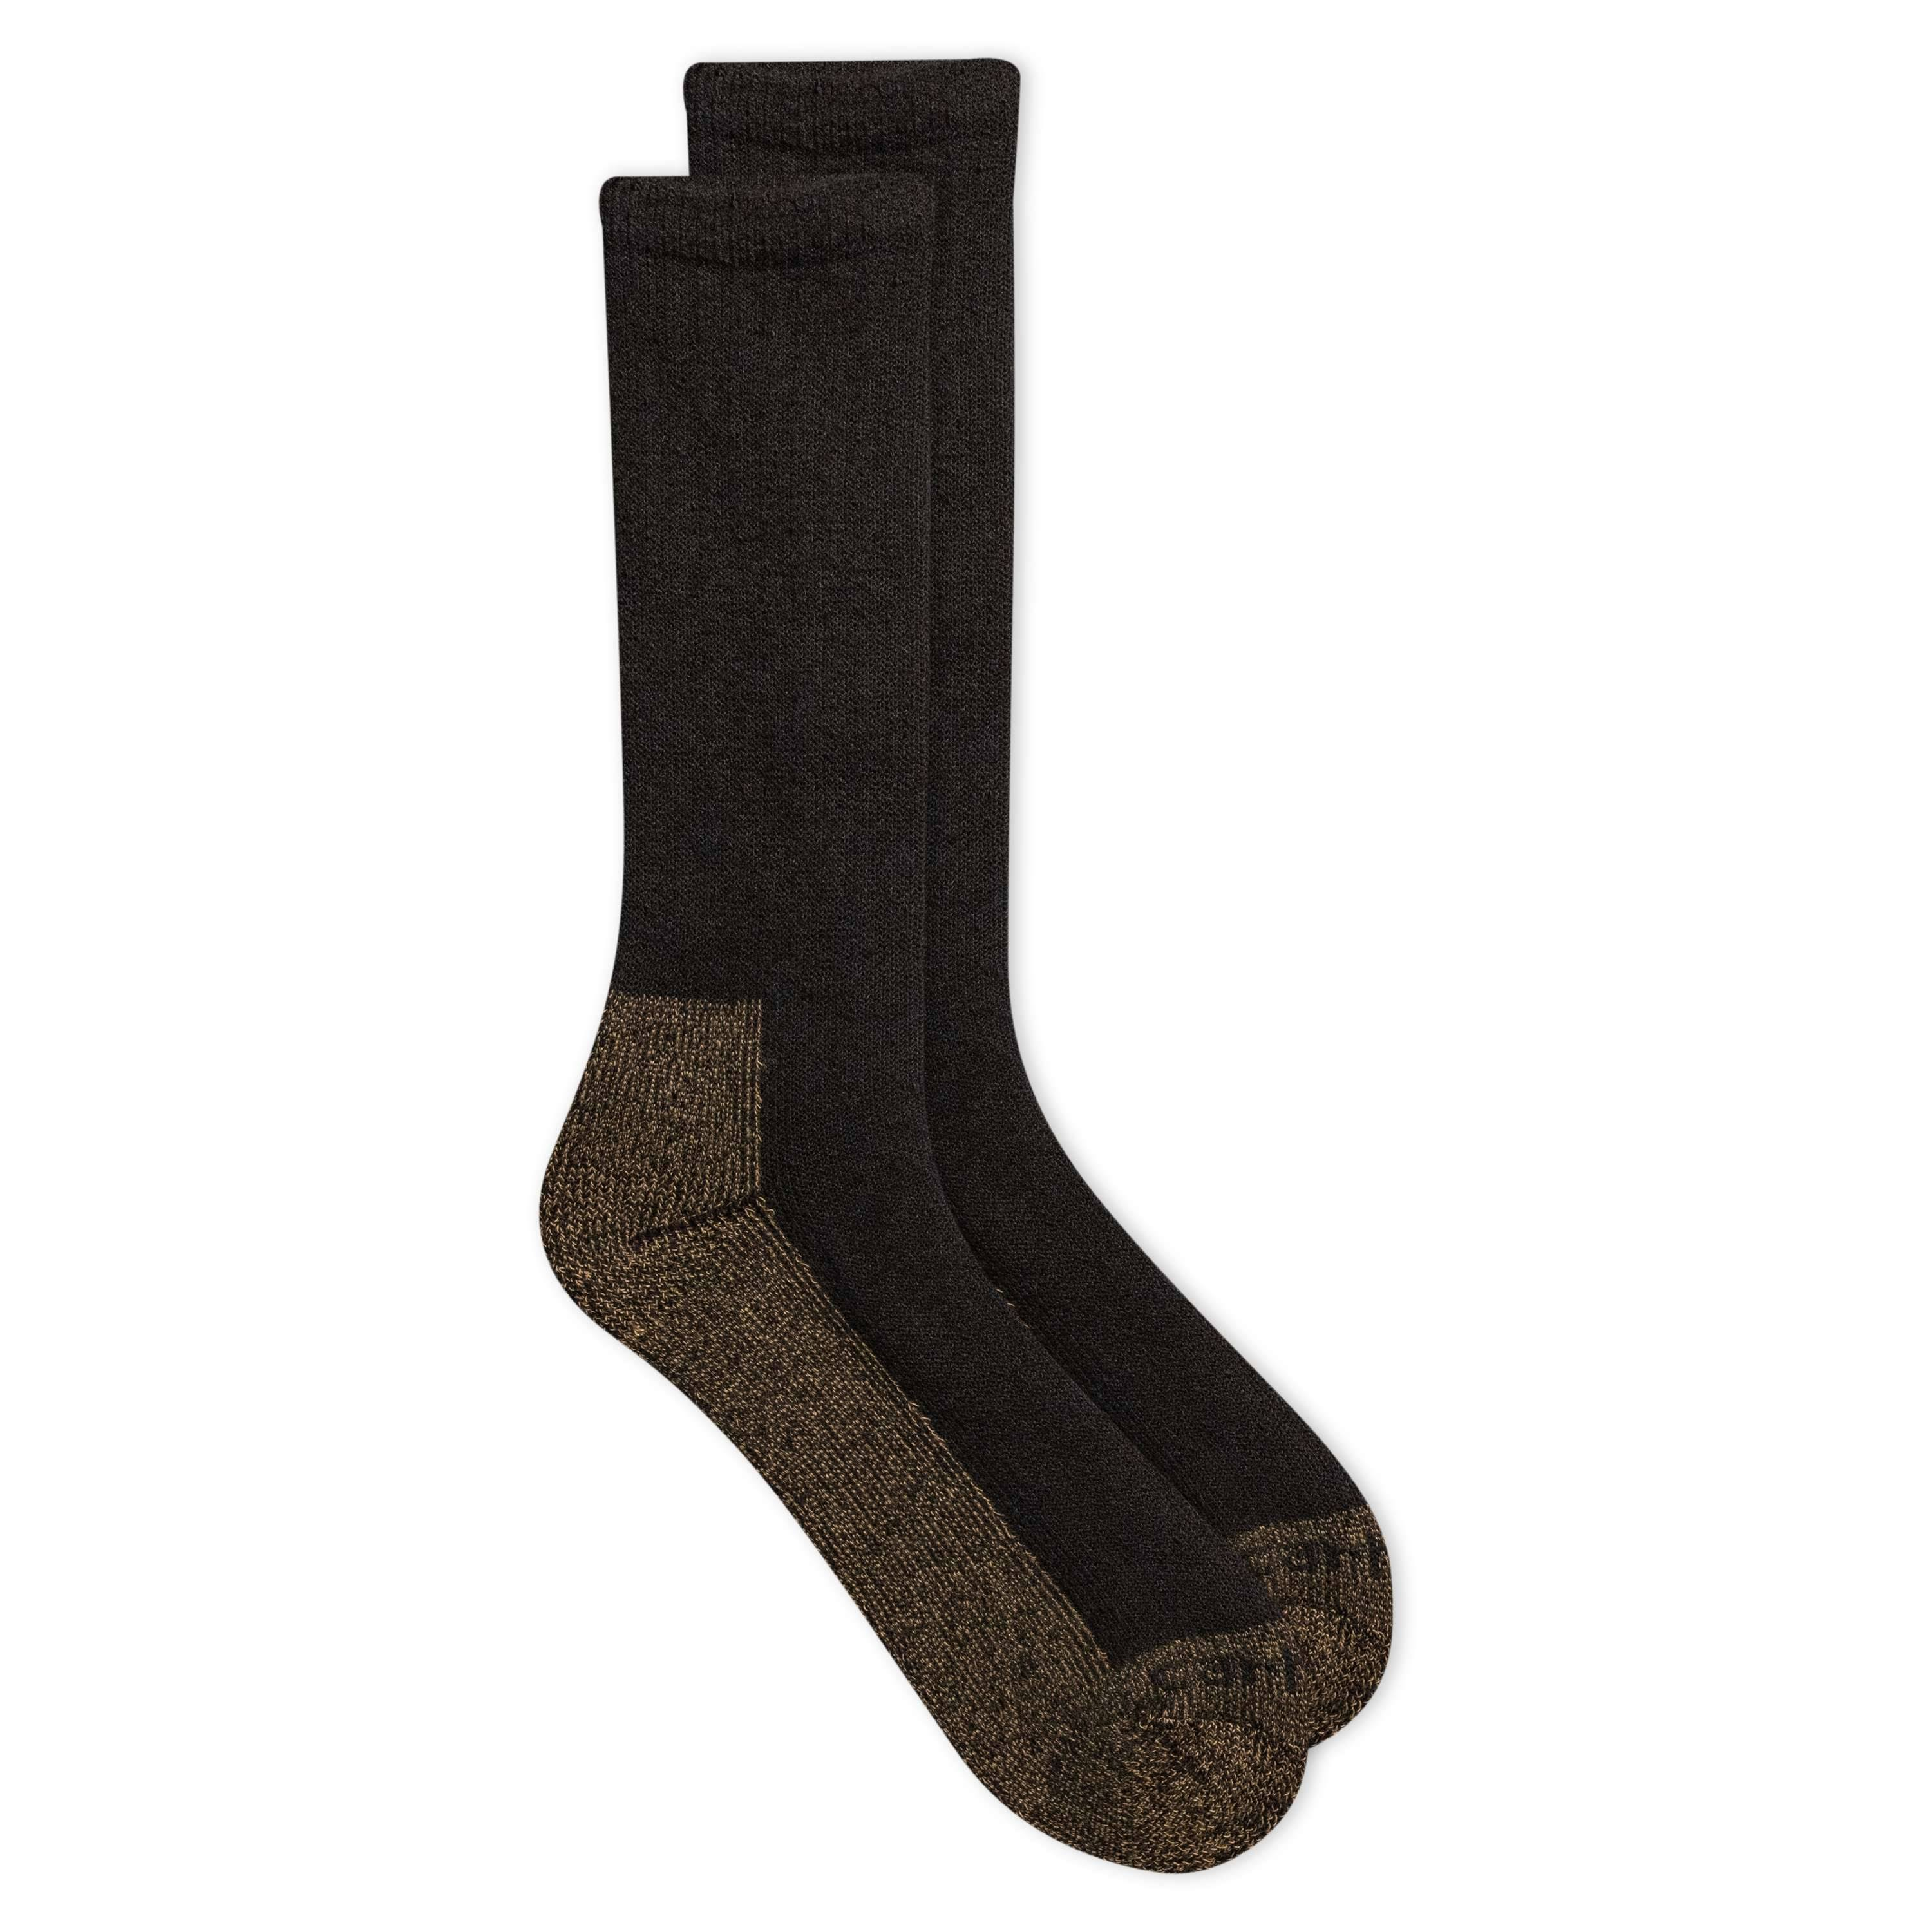 Carhartt 2 Pack Full Cushion Steel-Toe Synthetic Work Boot Socks